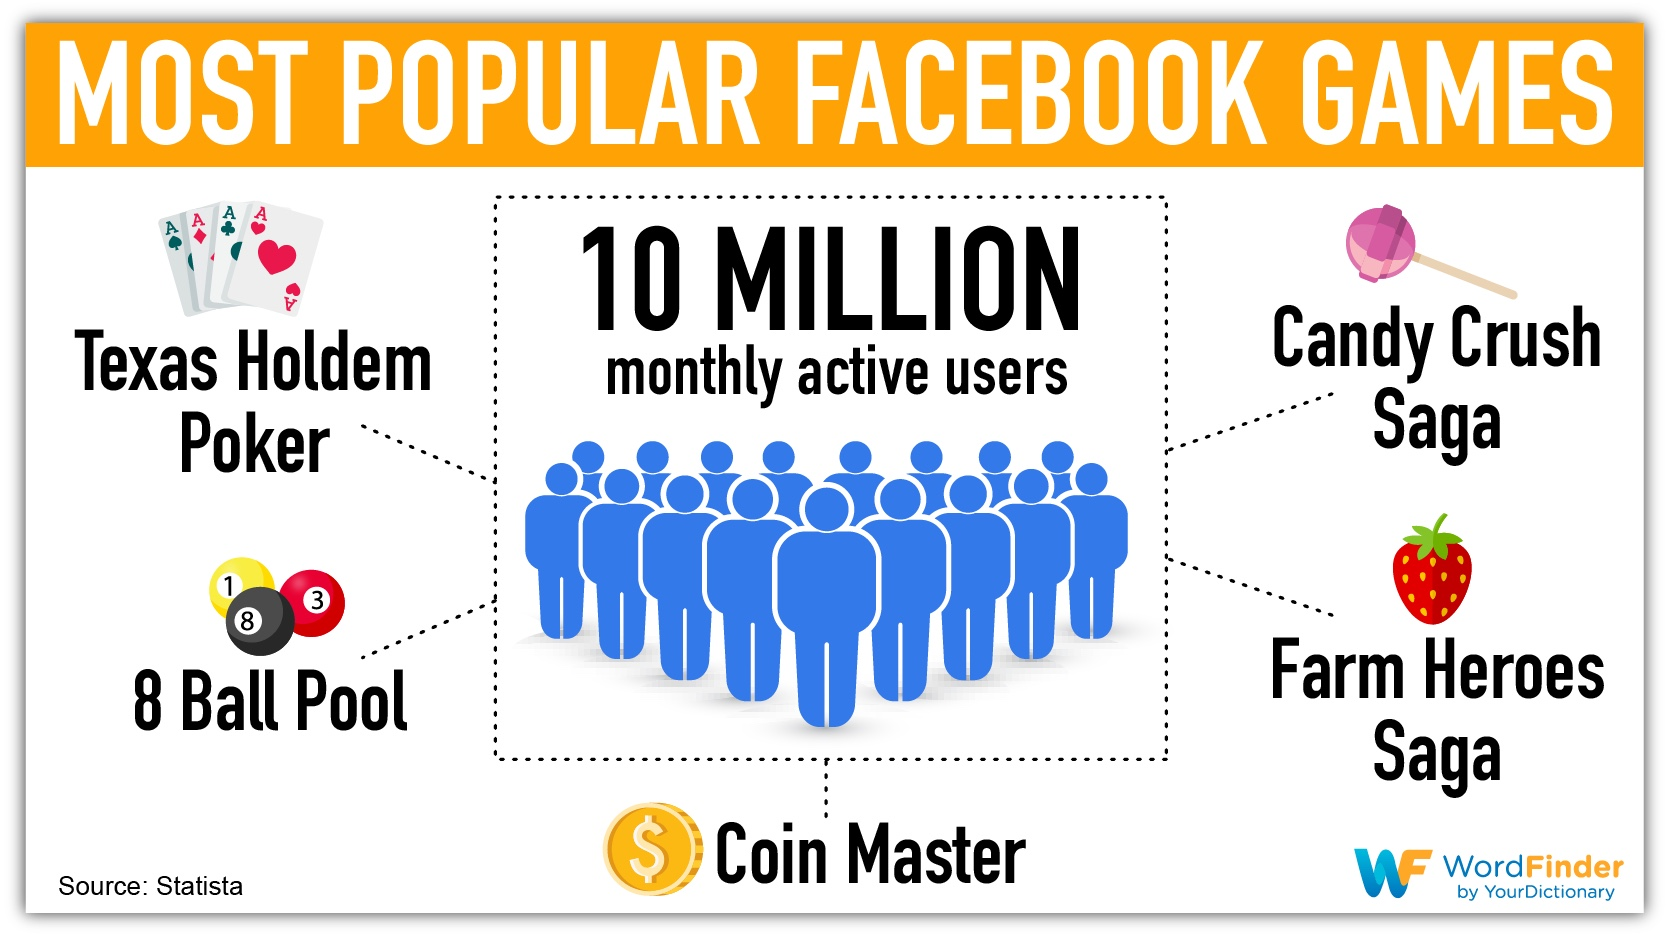 most popular facebook games infographic